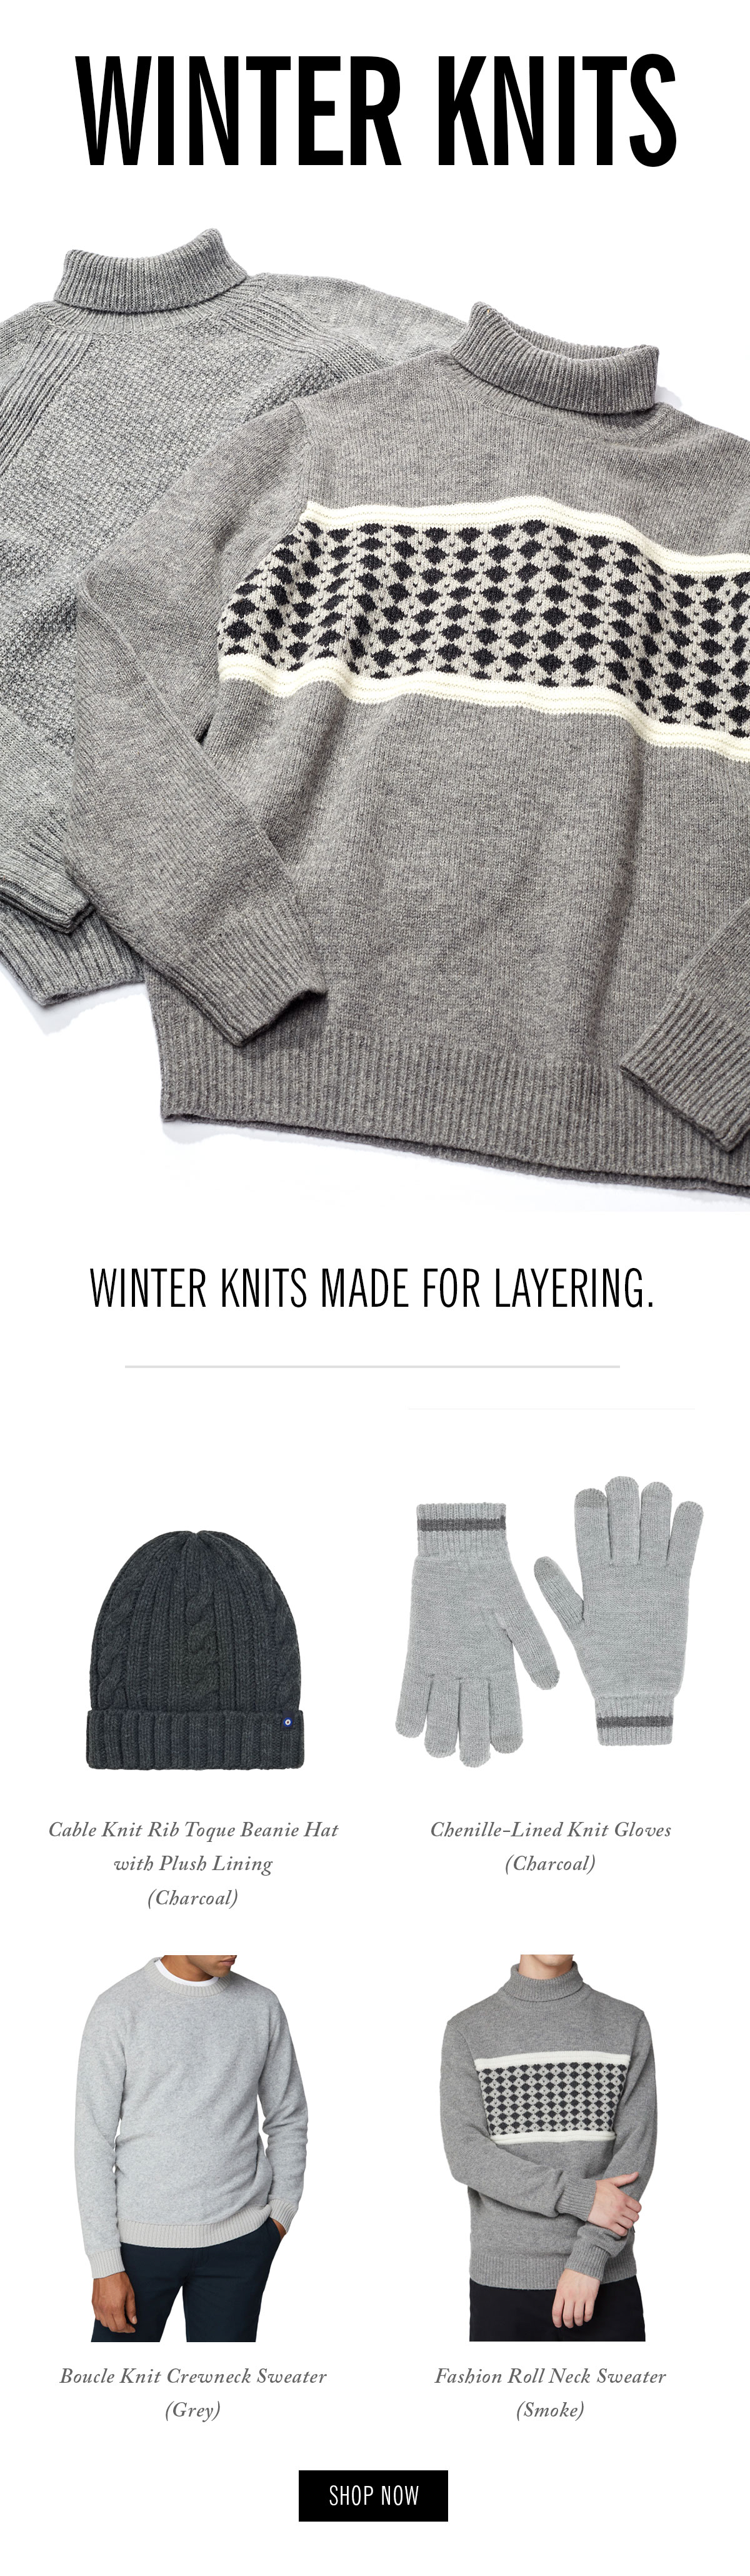 Winter knits: hats, gloves, sweaters